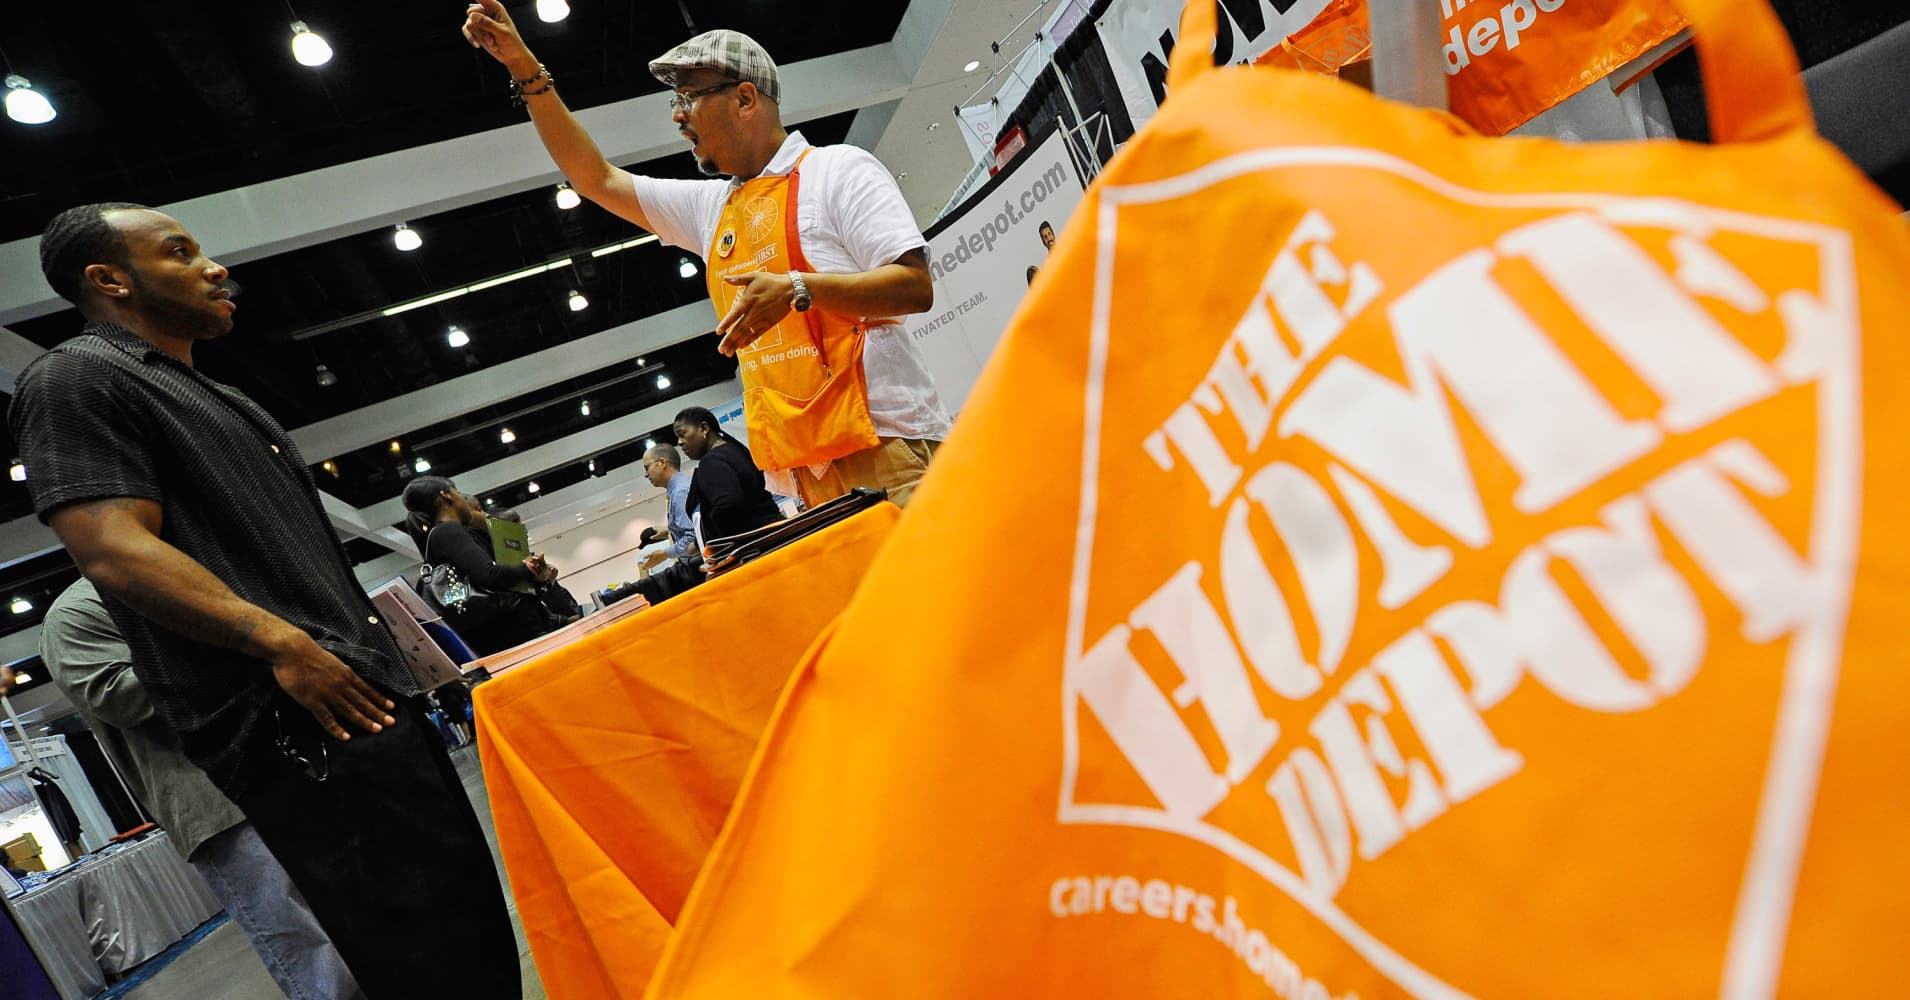 Home Depot shares hit all-time high as housing momentum swells, company advances mobile initiatives